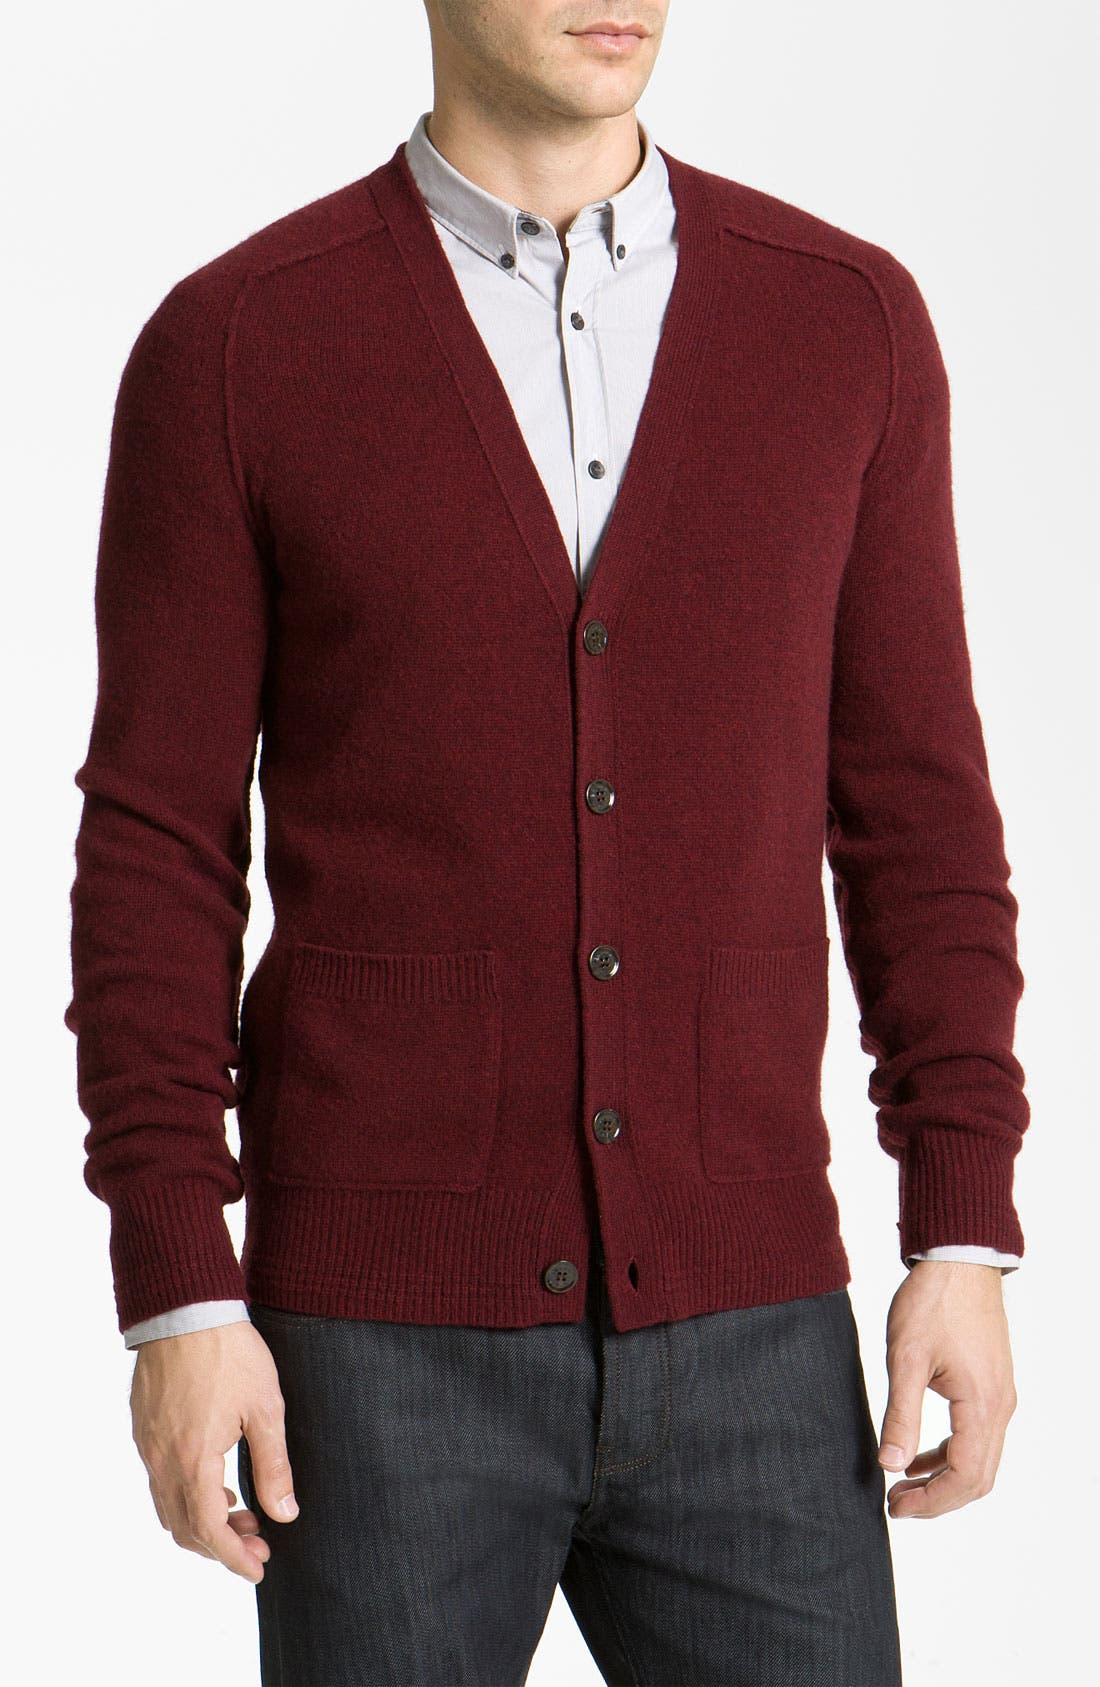 Alternate Image 1 Selected - Burberry Brit Wool & Cashmere Sweater